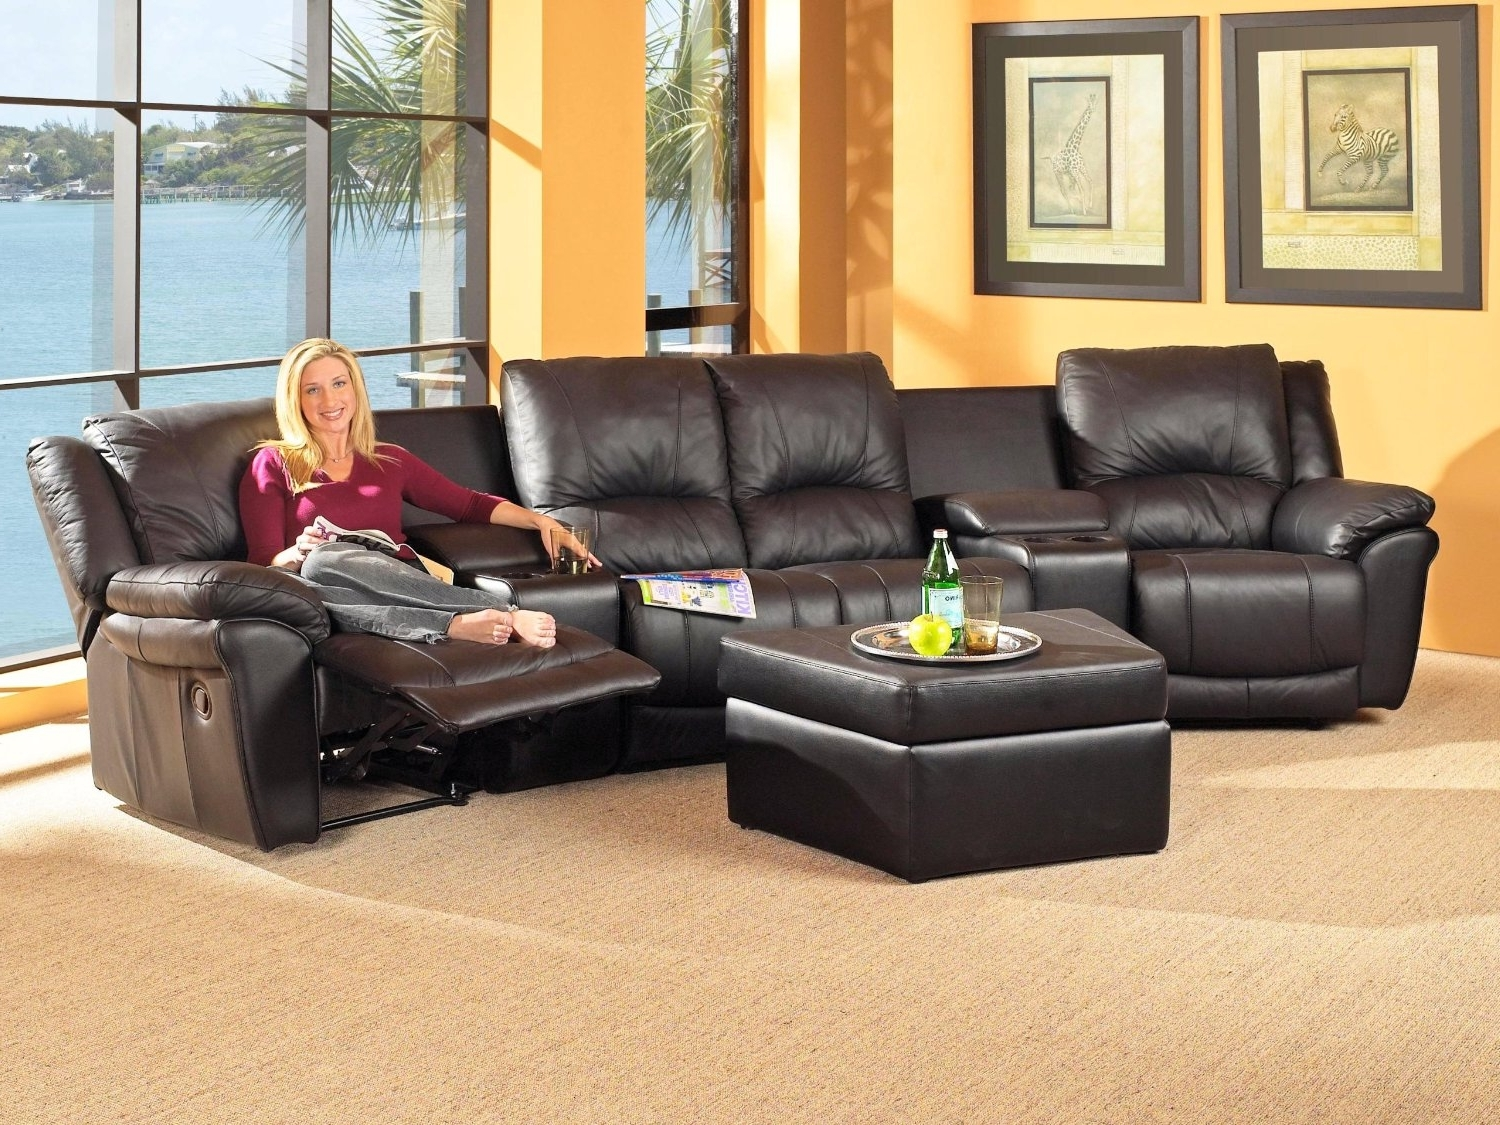 Popular Reclining Sectional With Chaise Sectional Couches Big Lots Intended For Reclining Sectionals With Chaise (View 11 of 15)